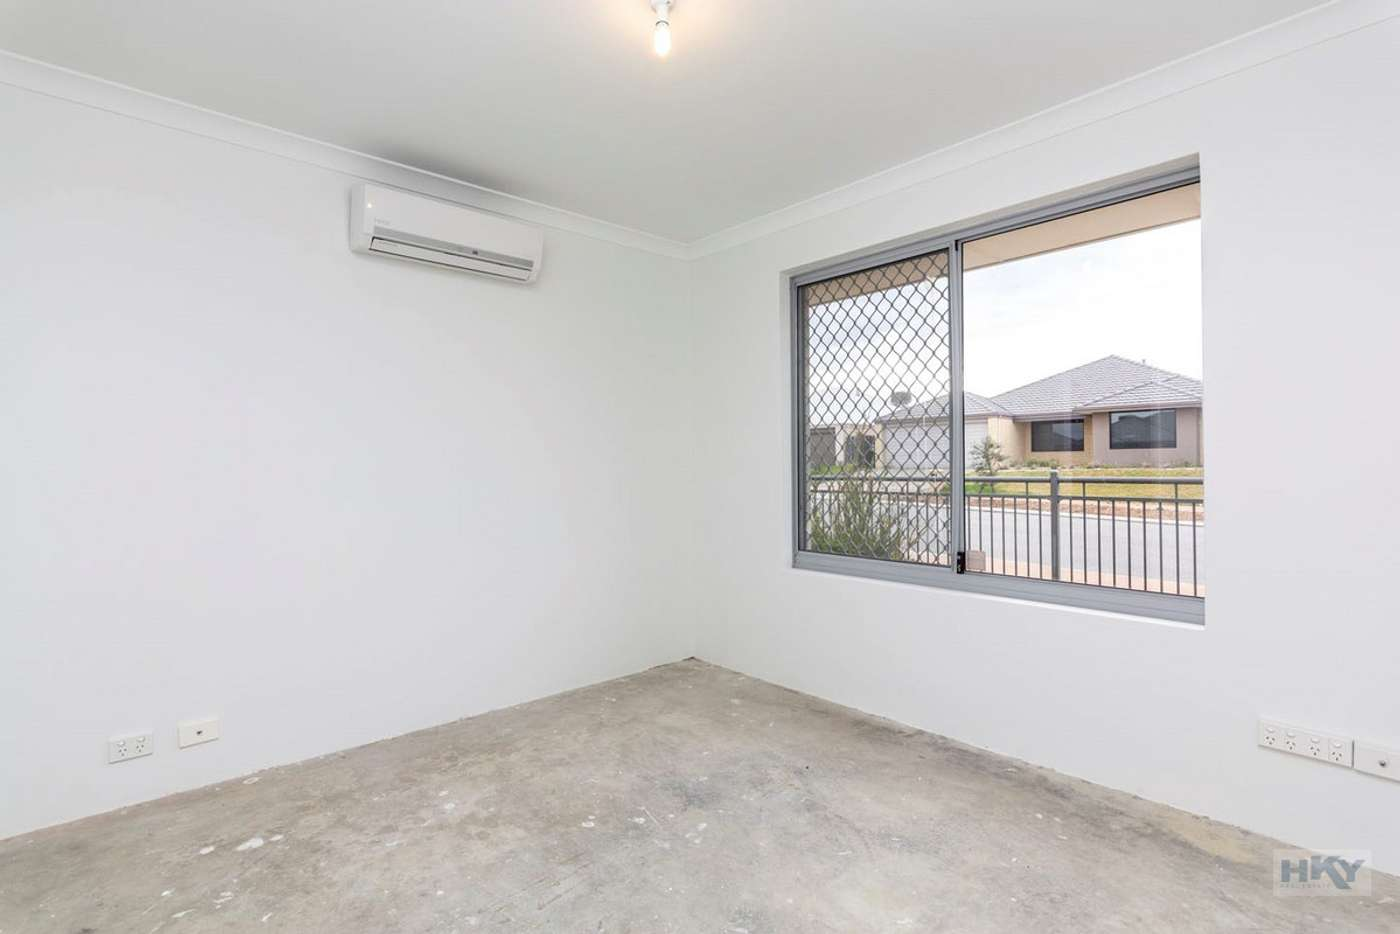 Seventh view of Homely house listing, 89 Brixton Crescent, Ellenbrook WA 6069